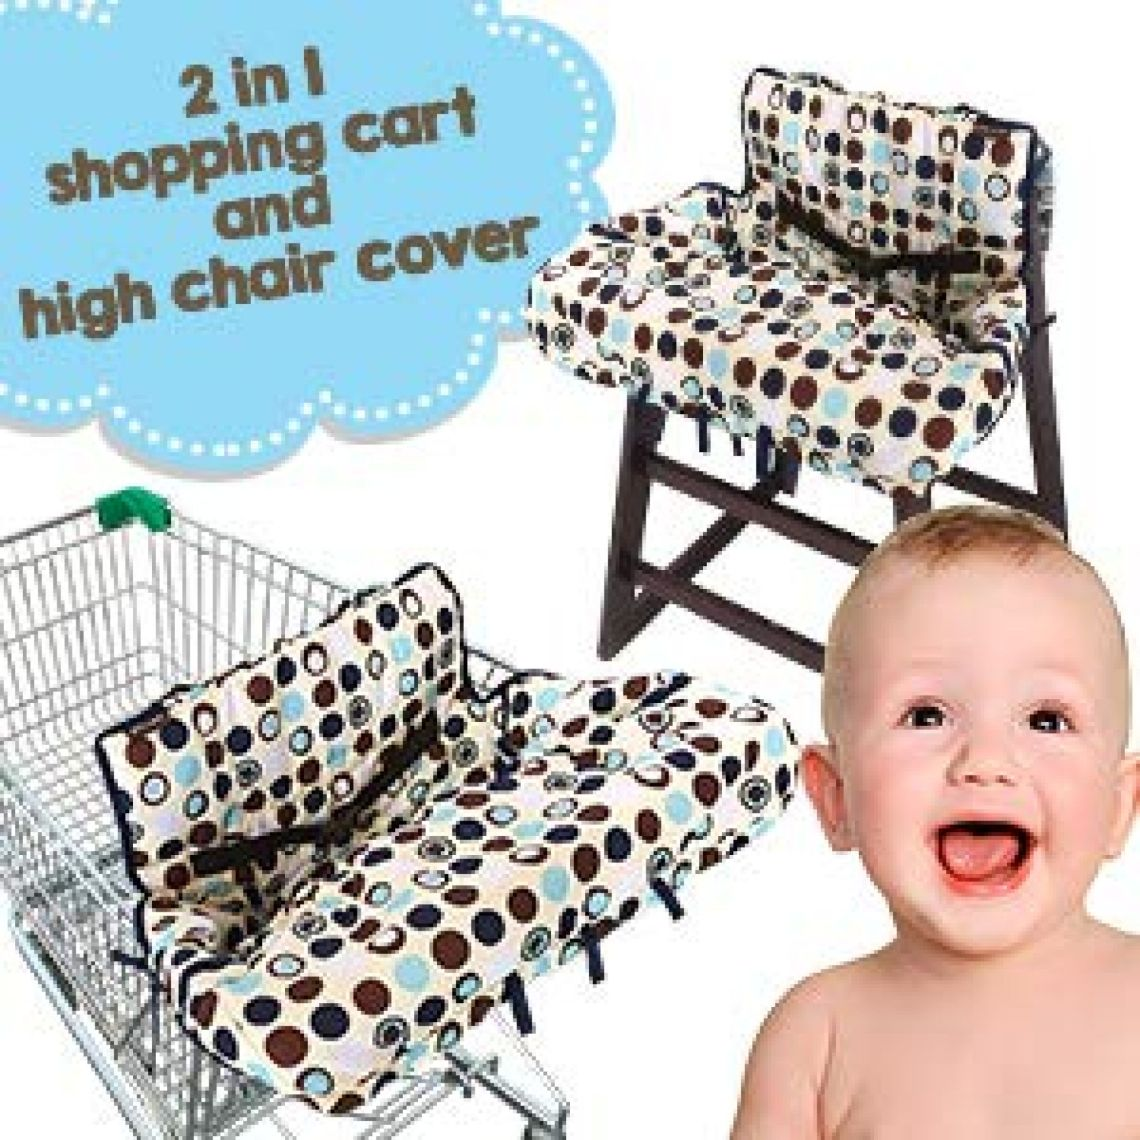 Amazon.com : Crocnfrog 2-in-1 Shopping Cart Cover   High Chair Cover for Baby   Medium : Baby